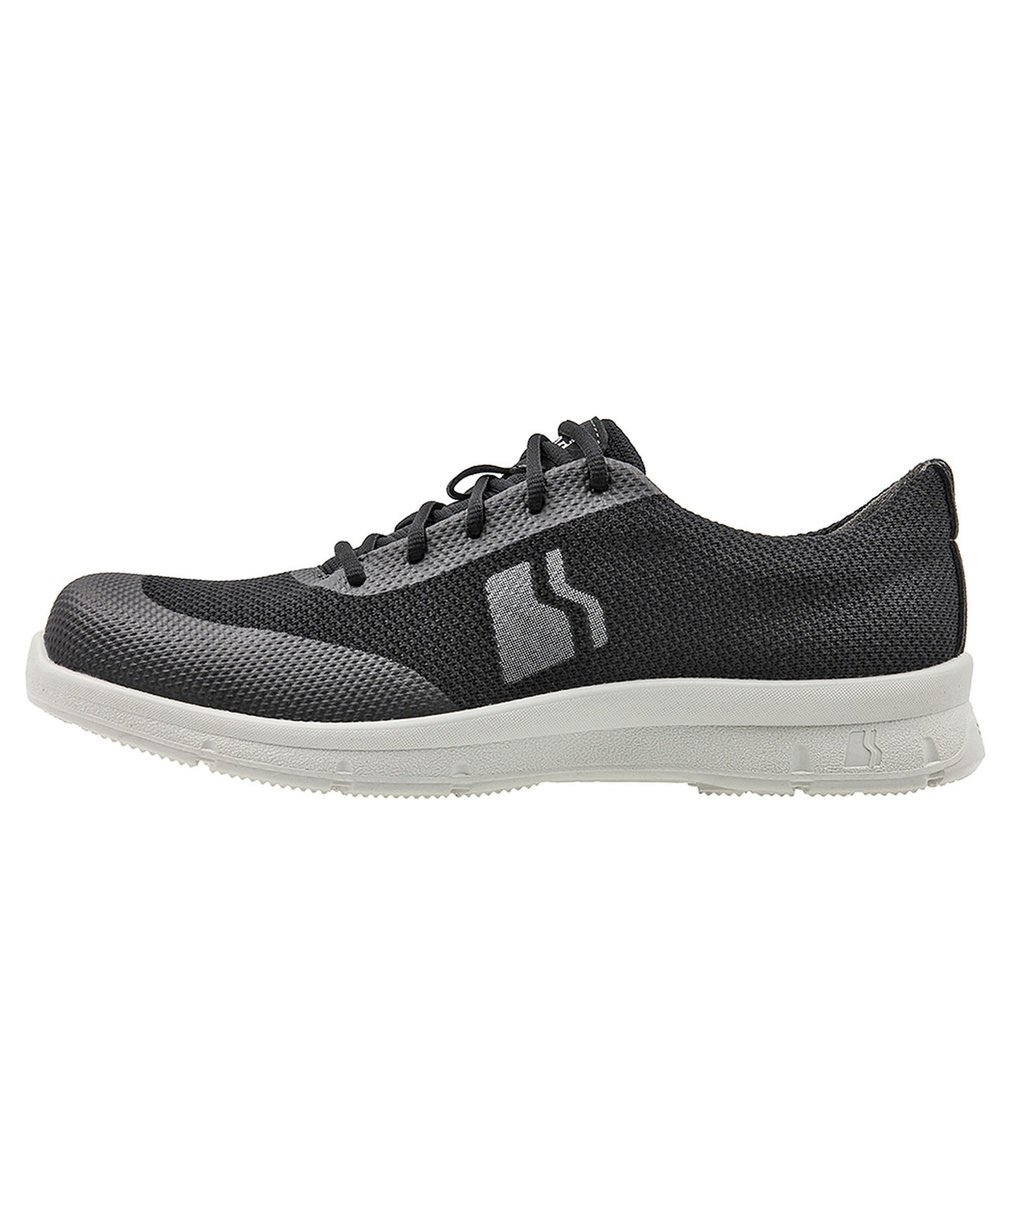 Sievi Fly work shoes O2, Black